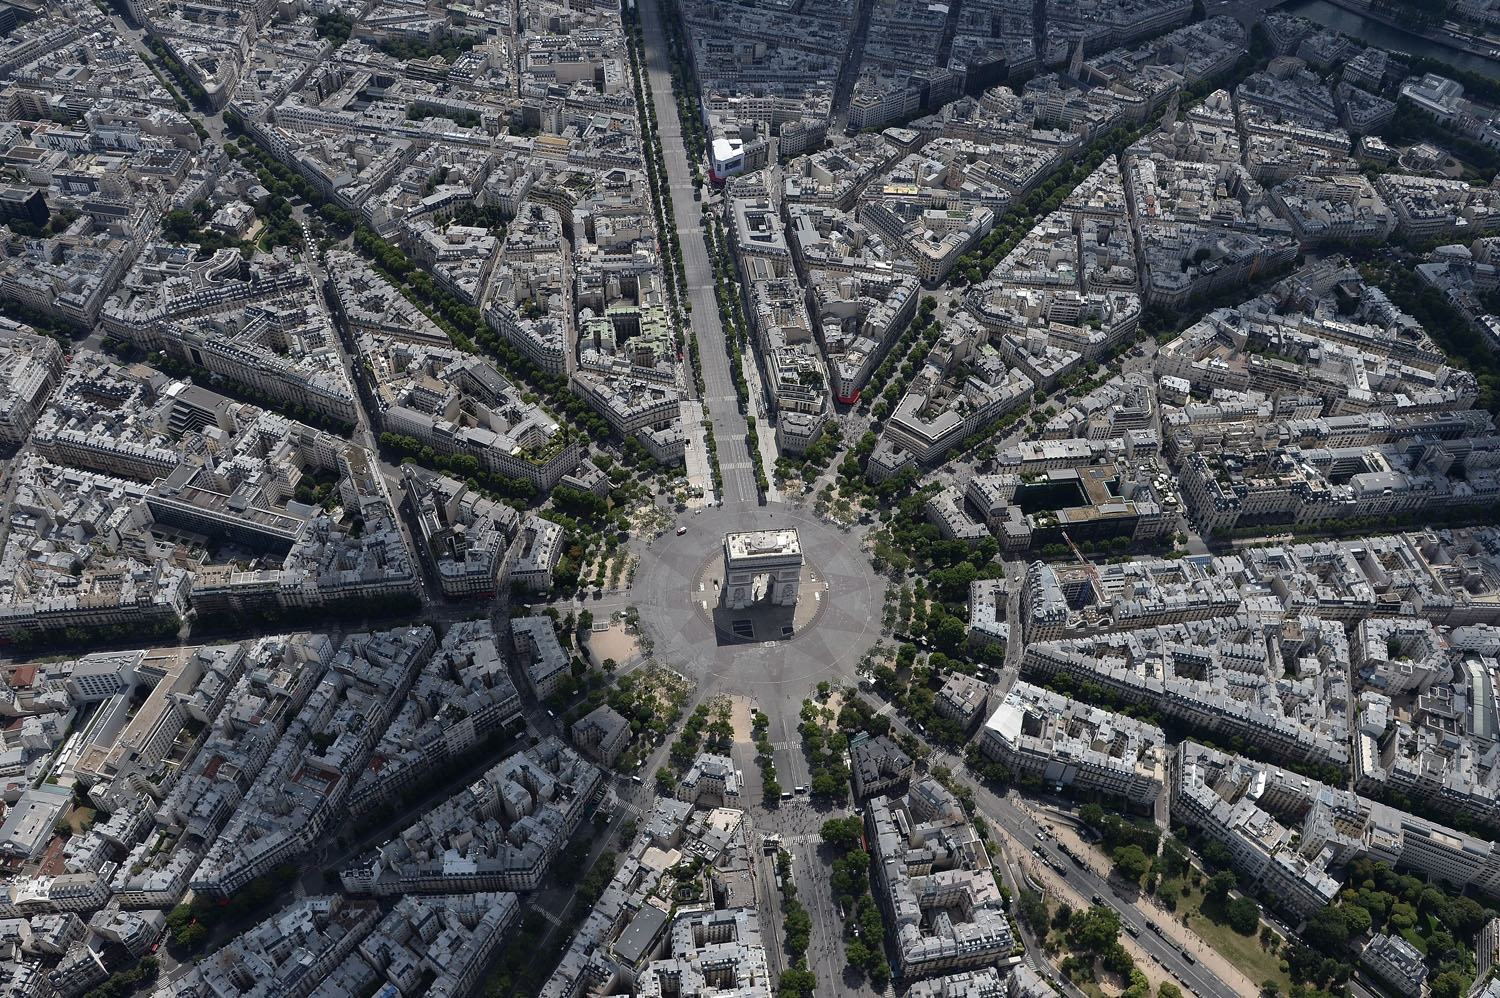 An aerial view shows the Arc de Triomphe during the annual Bastille Day military parade on the Champs-Elysees avenue in Paris on July 14, 2017. The parade on Paris's Champs-Elysees will commemorate the centenary of the US entering WWI and will feature hor